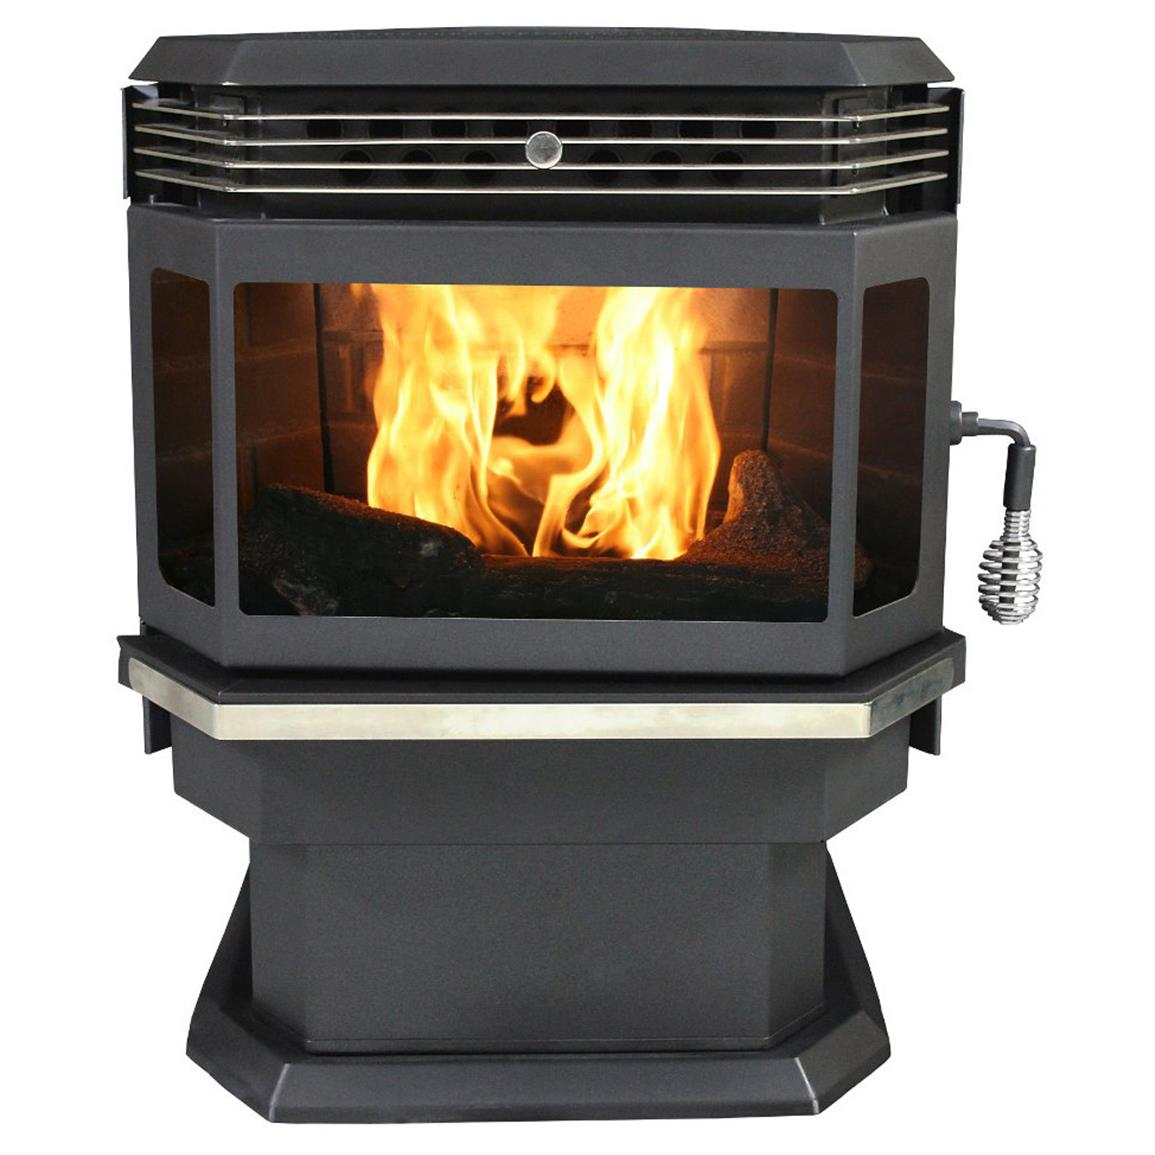 U s stove company bay front pellet stove 588706 wood for Hardwood floors 2000 sq ft